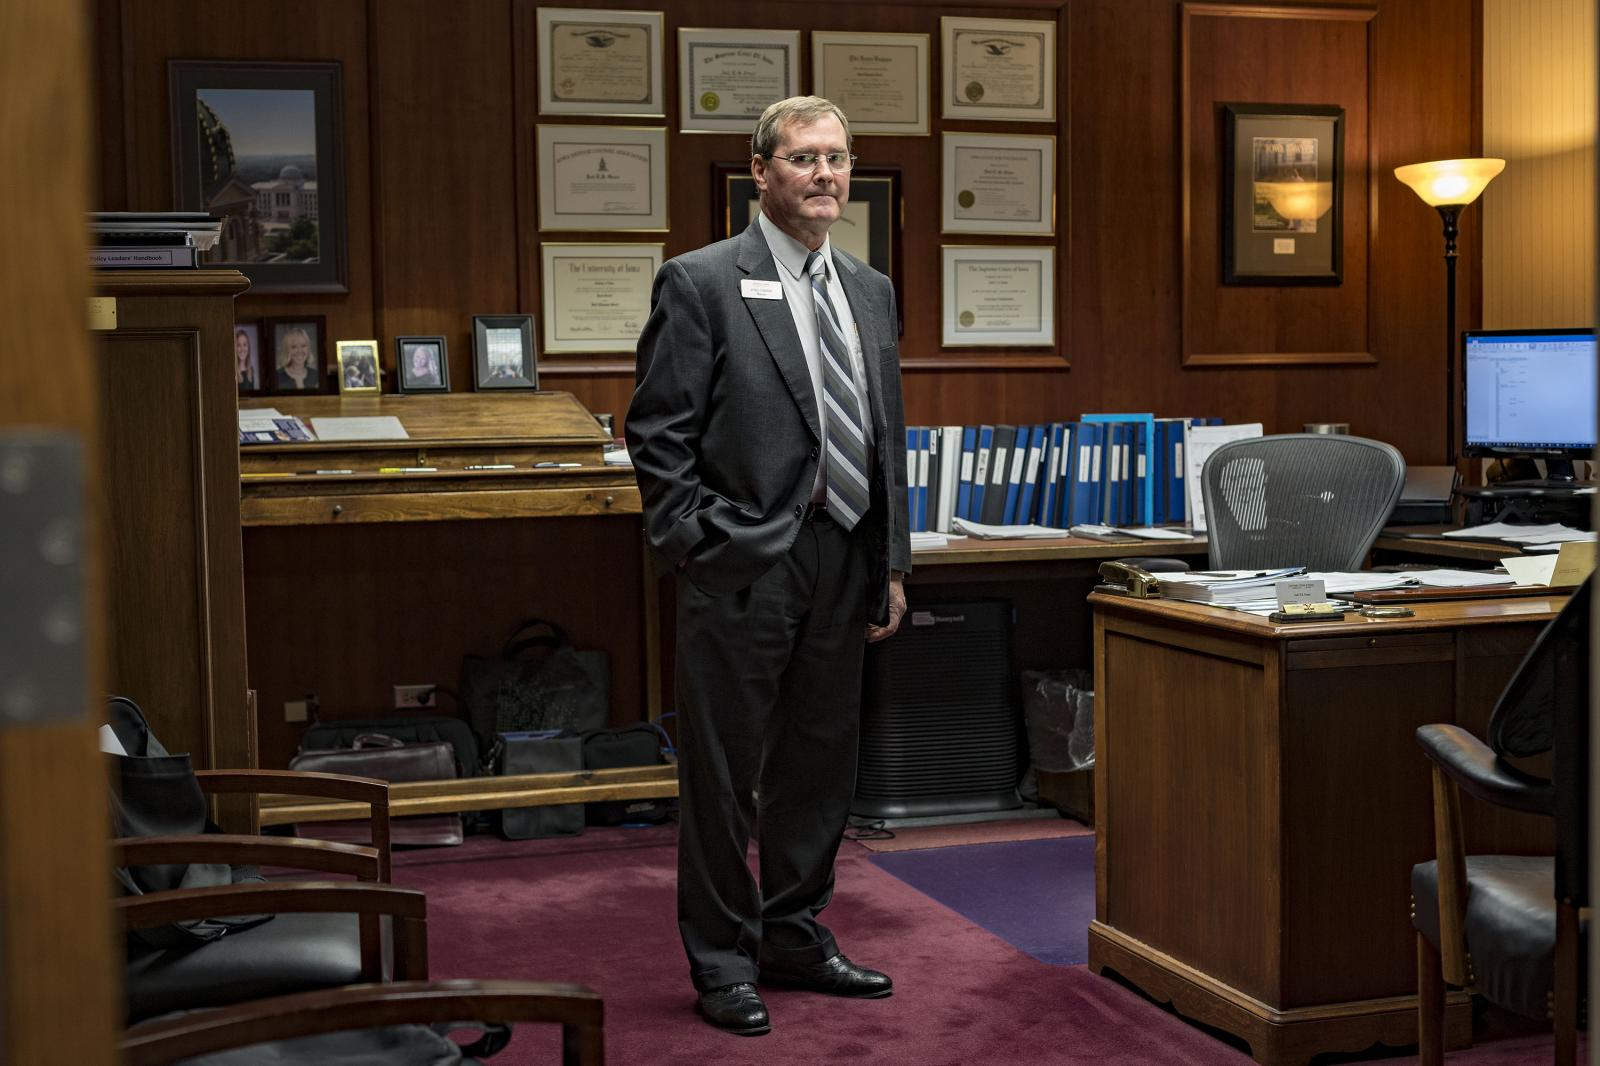 MARSHALLTOWN, IA - DECEMBER 5: Mayor Joel Greer of Marshalltown, Iowa stands in his office on Wednesday, December 5, 2018. A review by The Post of Acting Attorney General Matthew G. Whitaker's statements and actions as US Attorney for the southern district of Iowa from 2004 to 2009 found that Whitaker claimed credit for initiating a six-state raid in 2006 that was designed to be on the largest such crackdowns at the time. (Photo by KC McGinnis/For The Washington Post)